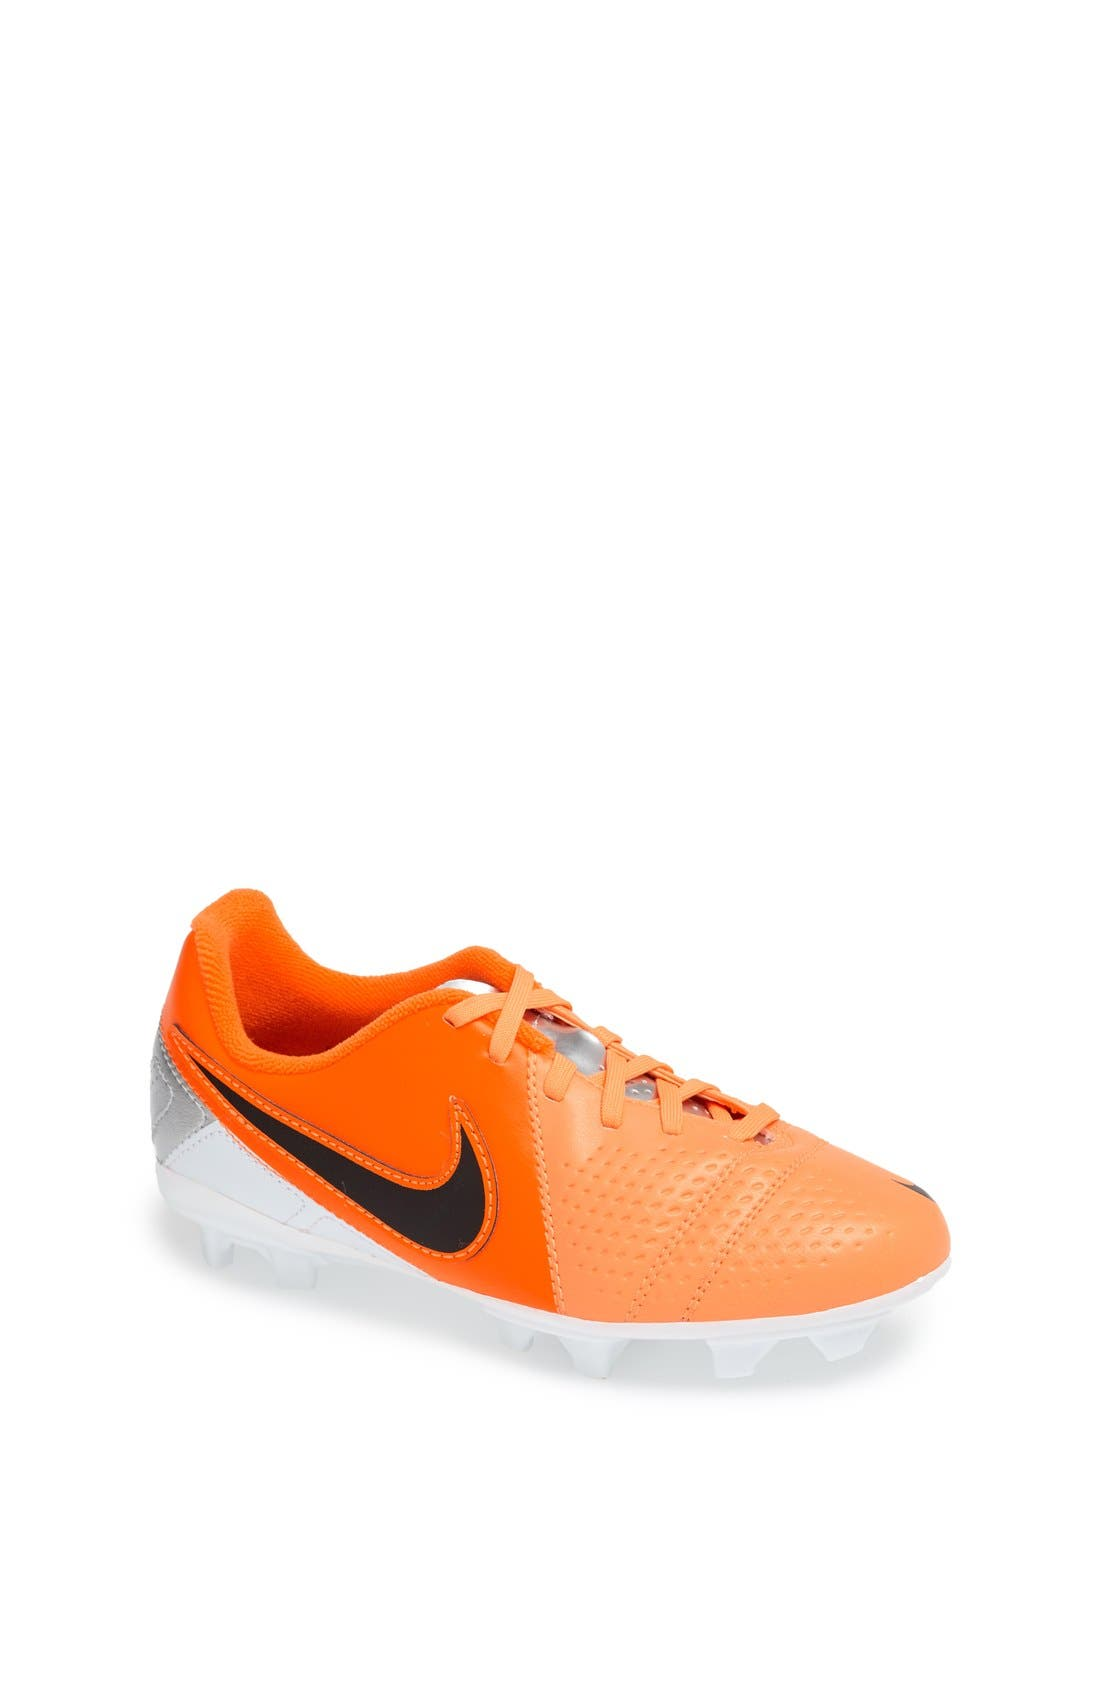 Alternate Image 1 Selected - Nike 'Jr. CTR360 Libretto III' Soccer Cleat (Toddler, Little Kid & Big Kid)